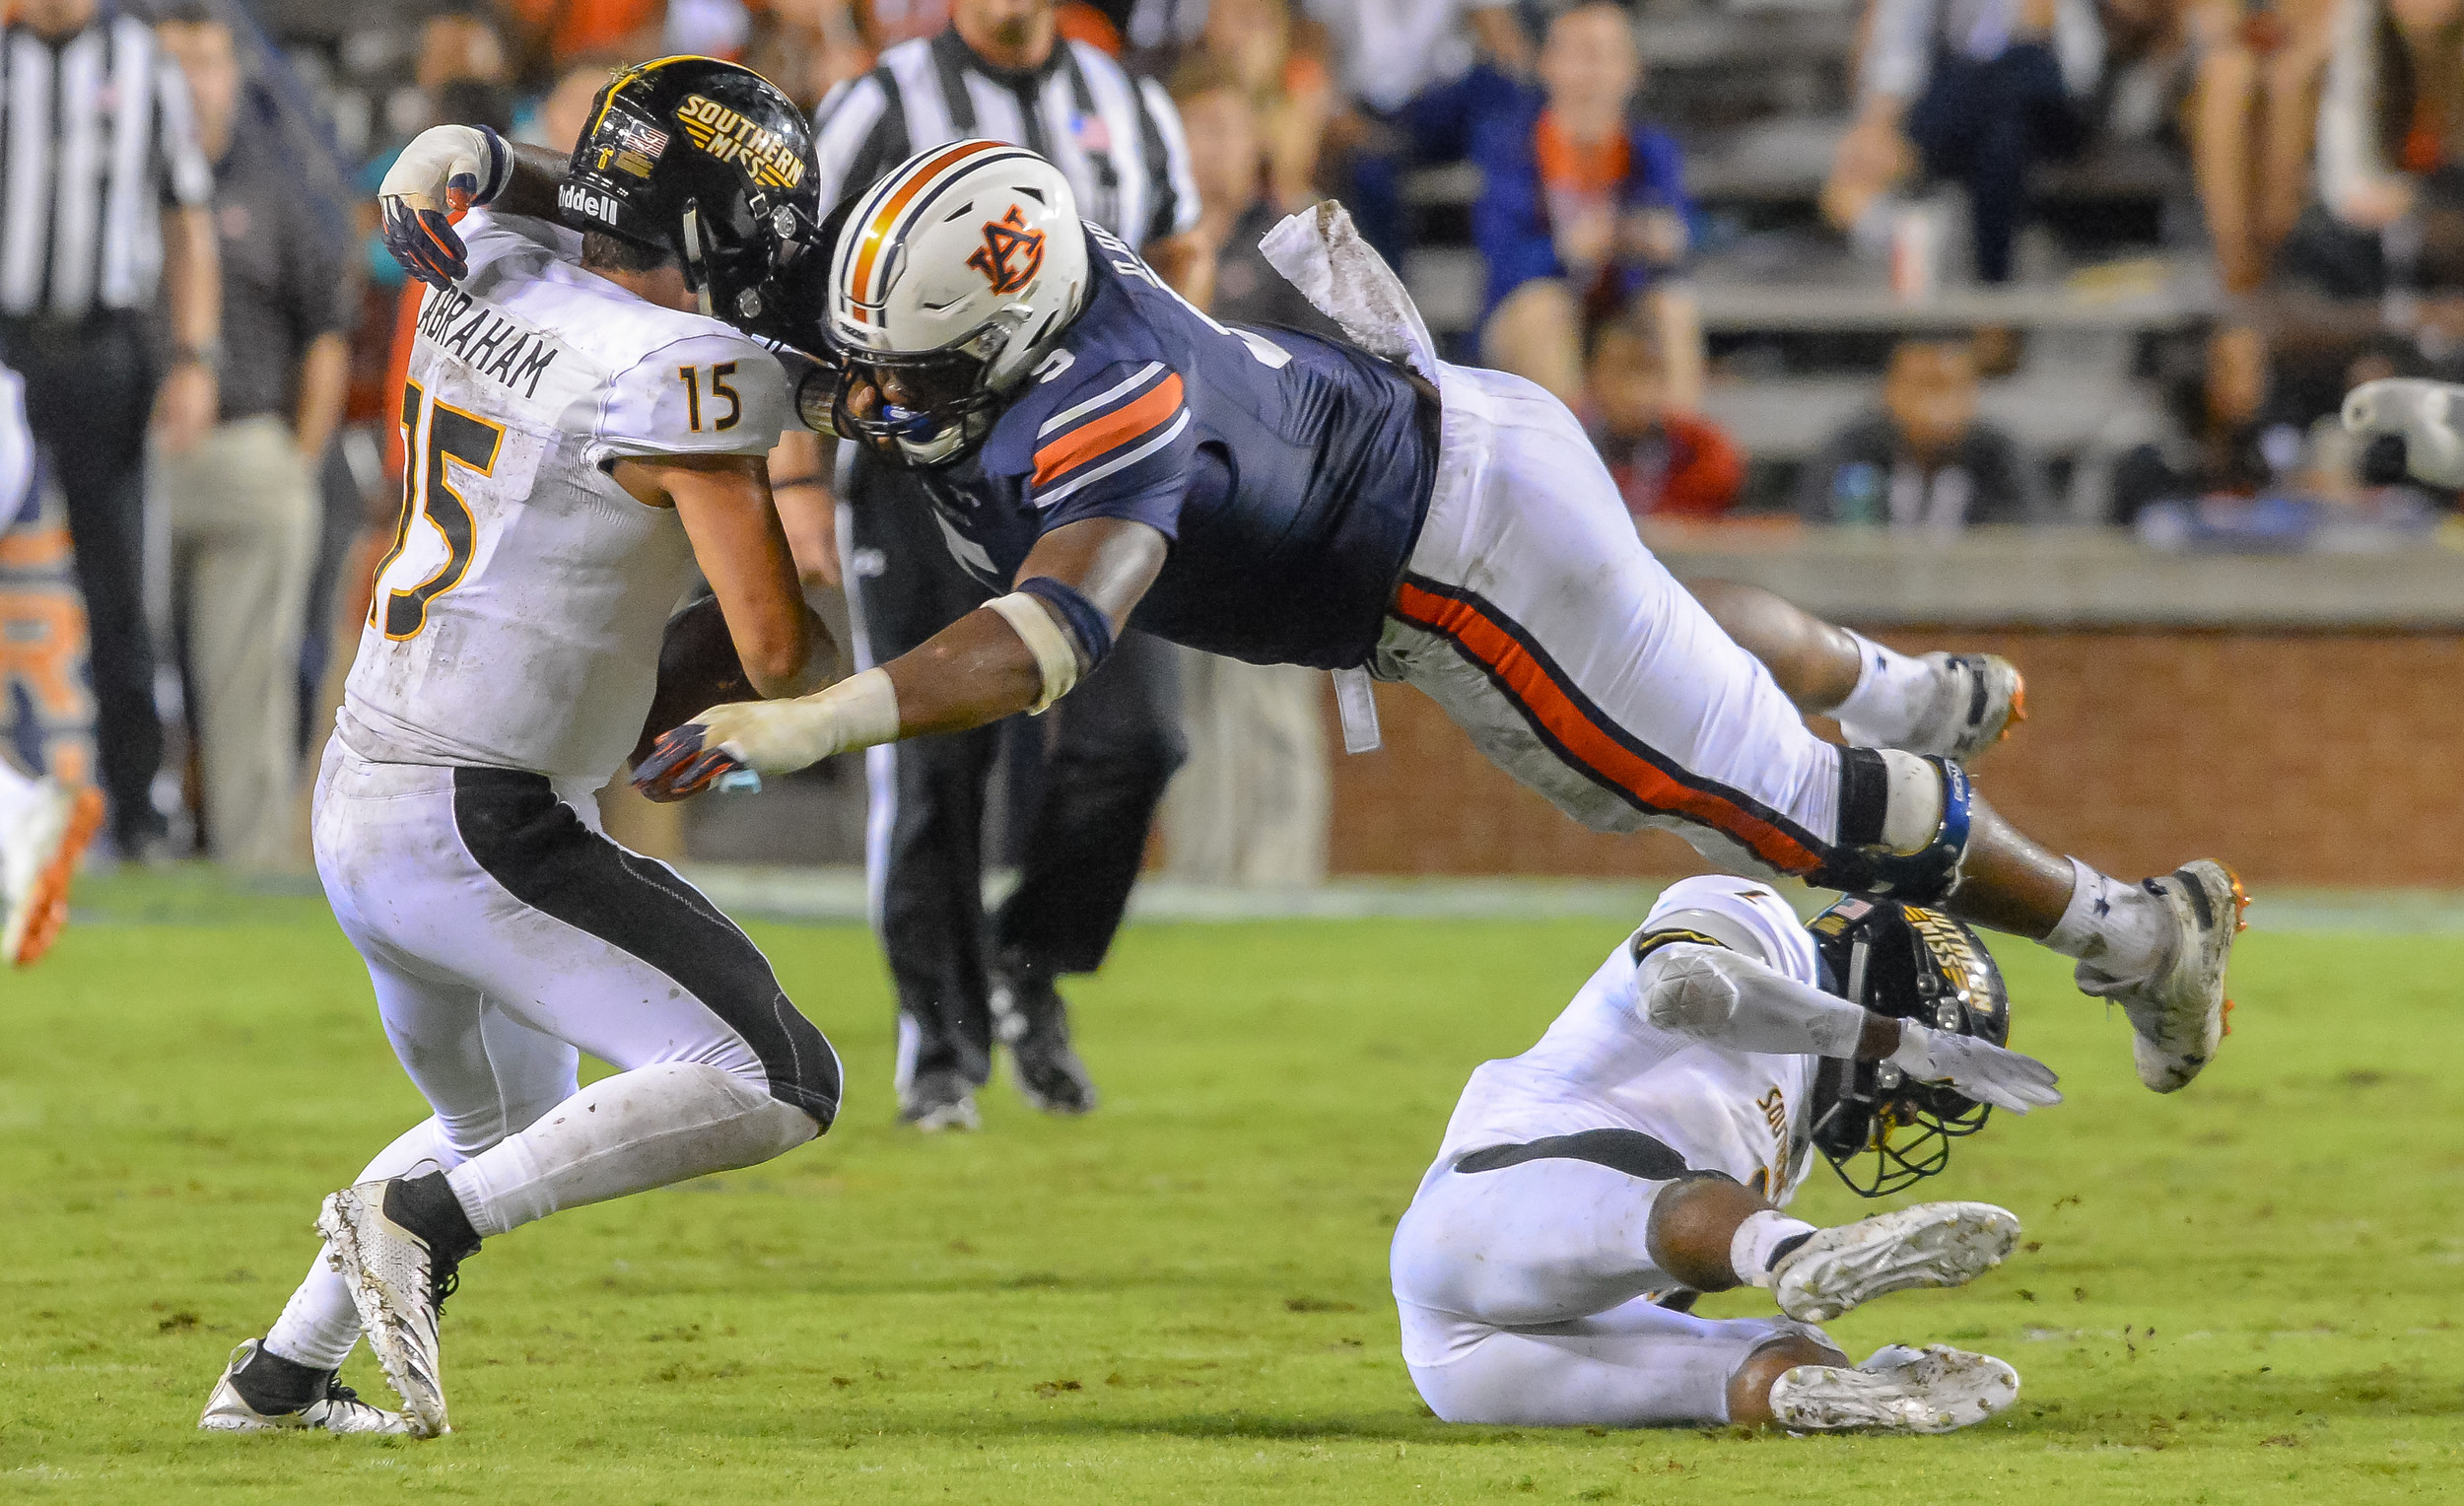 Southern Miss Golden Eagles quarterback Jack Abraham (15) is sacked by Auburn Tigers defensive lineman Derrick Brown (5) during the second half of Saturday's game, at Jordan Hare Stadium in Auburn AL. Daily Mountain Eagle -  Jeff Johnsey